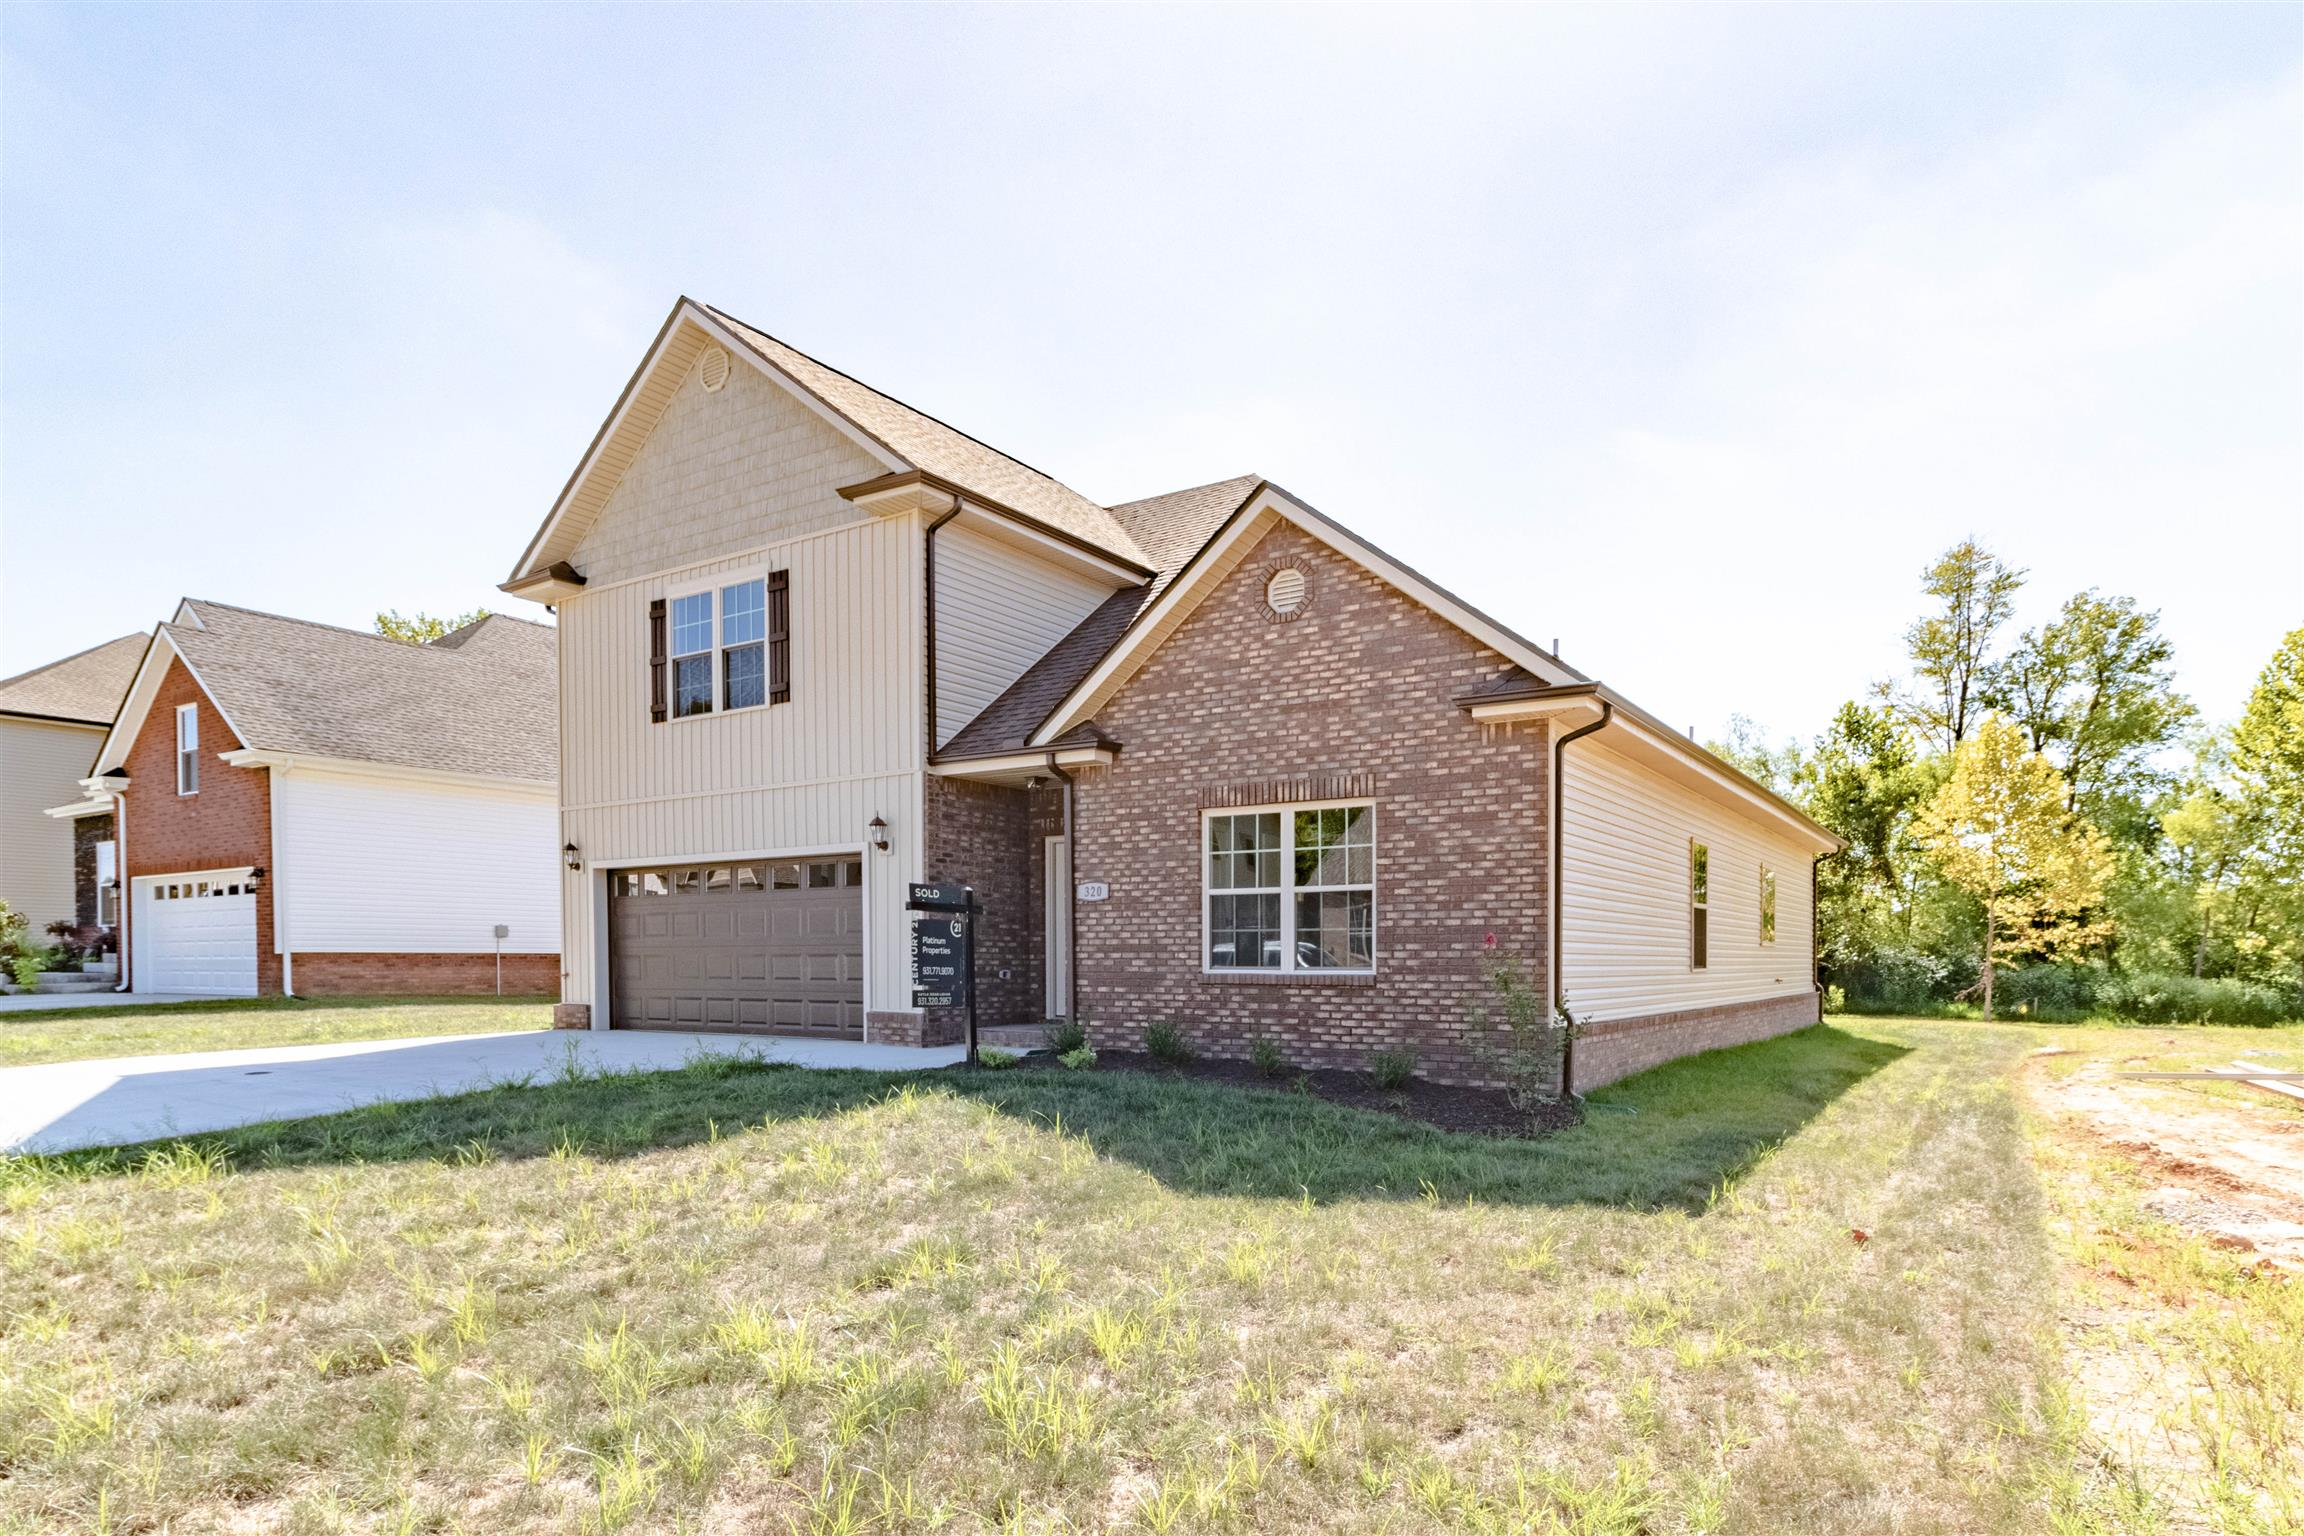 332 Chase Dr, Clarksville, TN 37043 - Clarksville, TN real estate listing